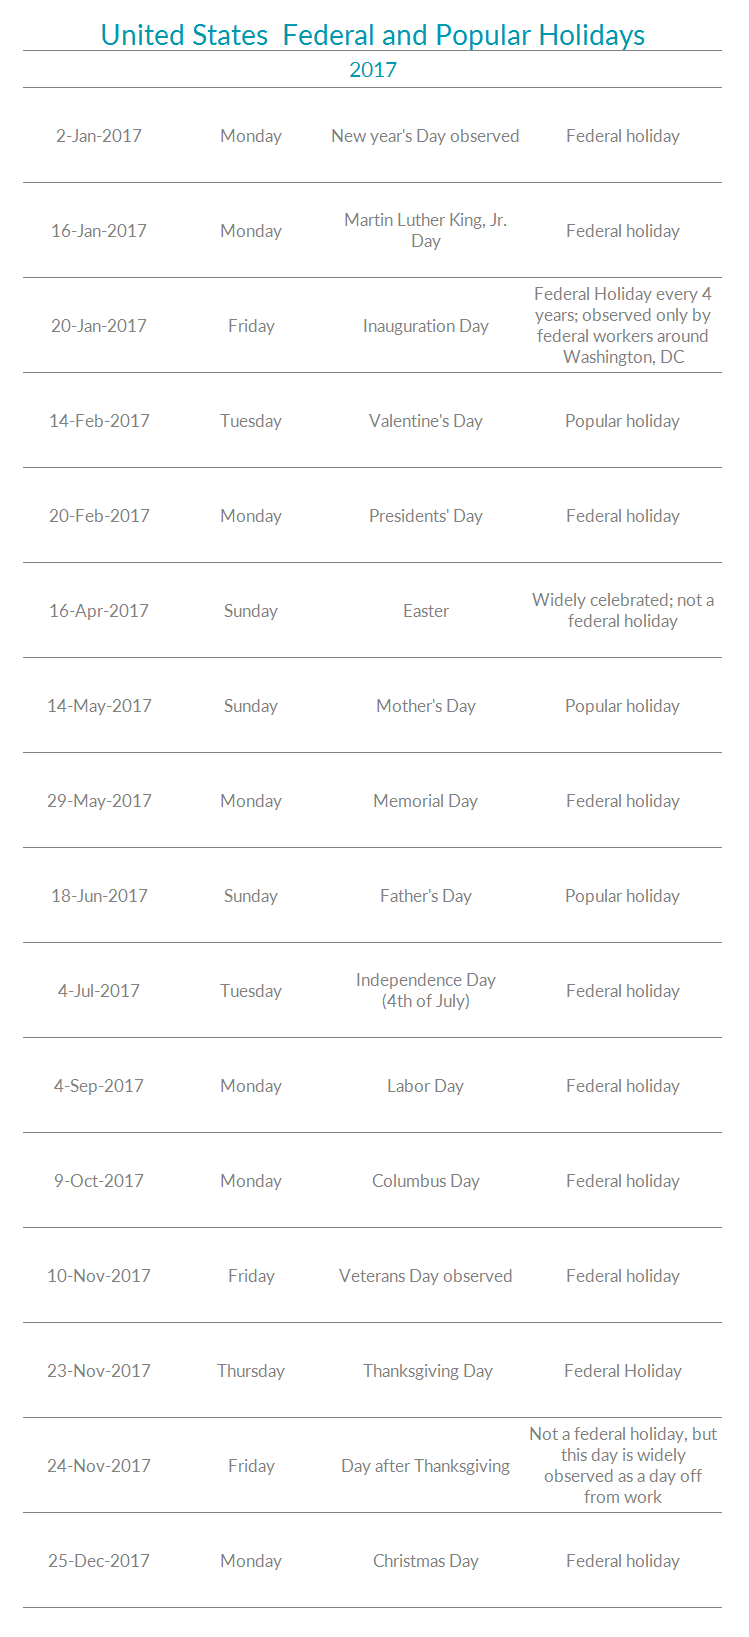 Table of federal and popular US holidays in 2016